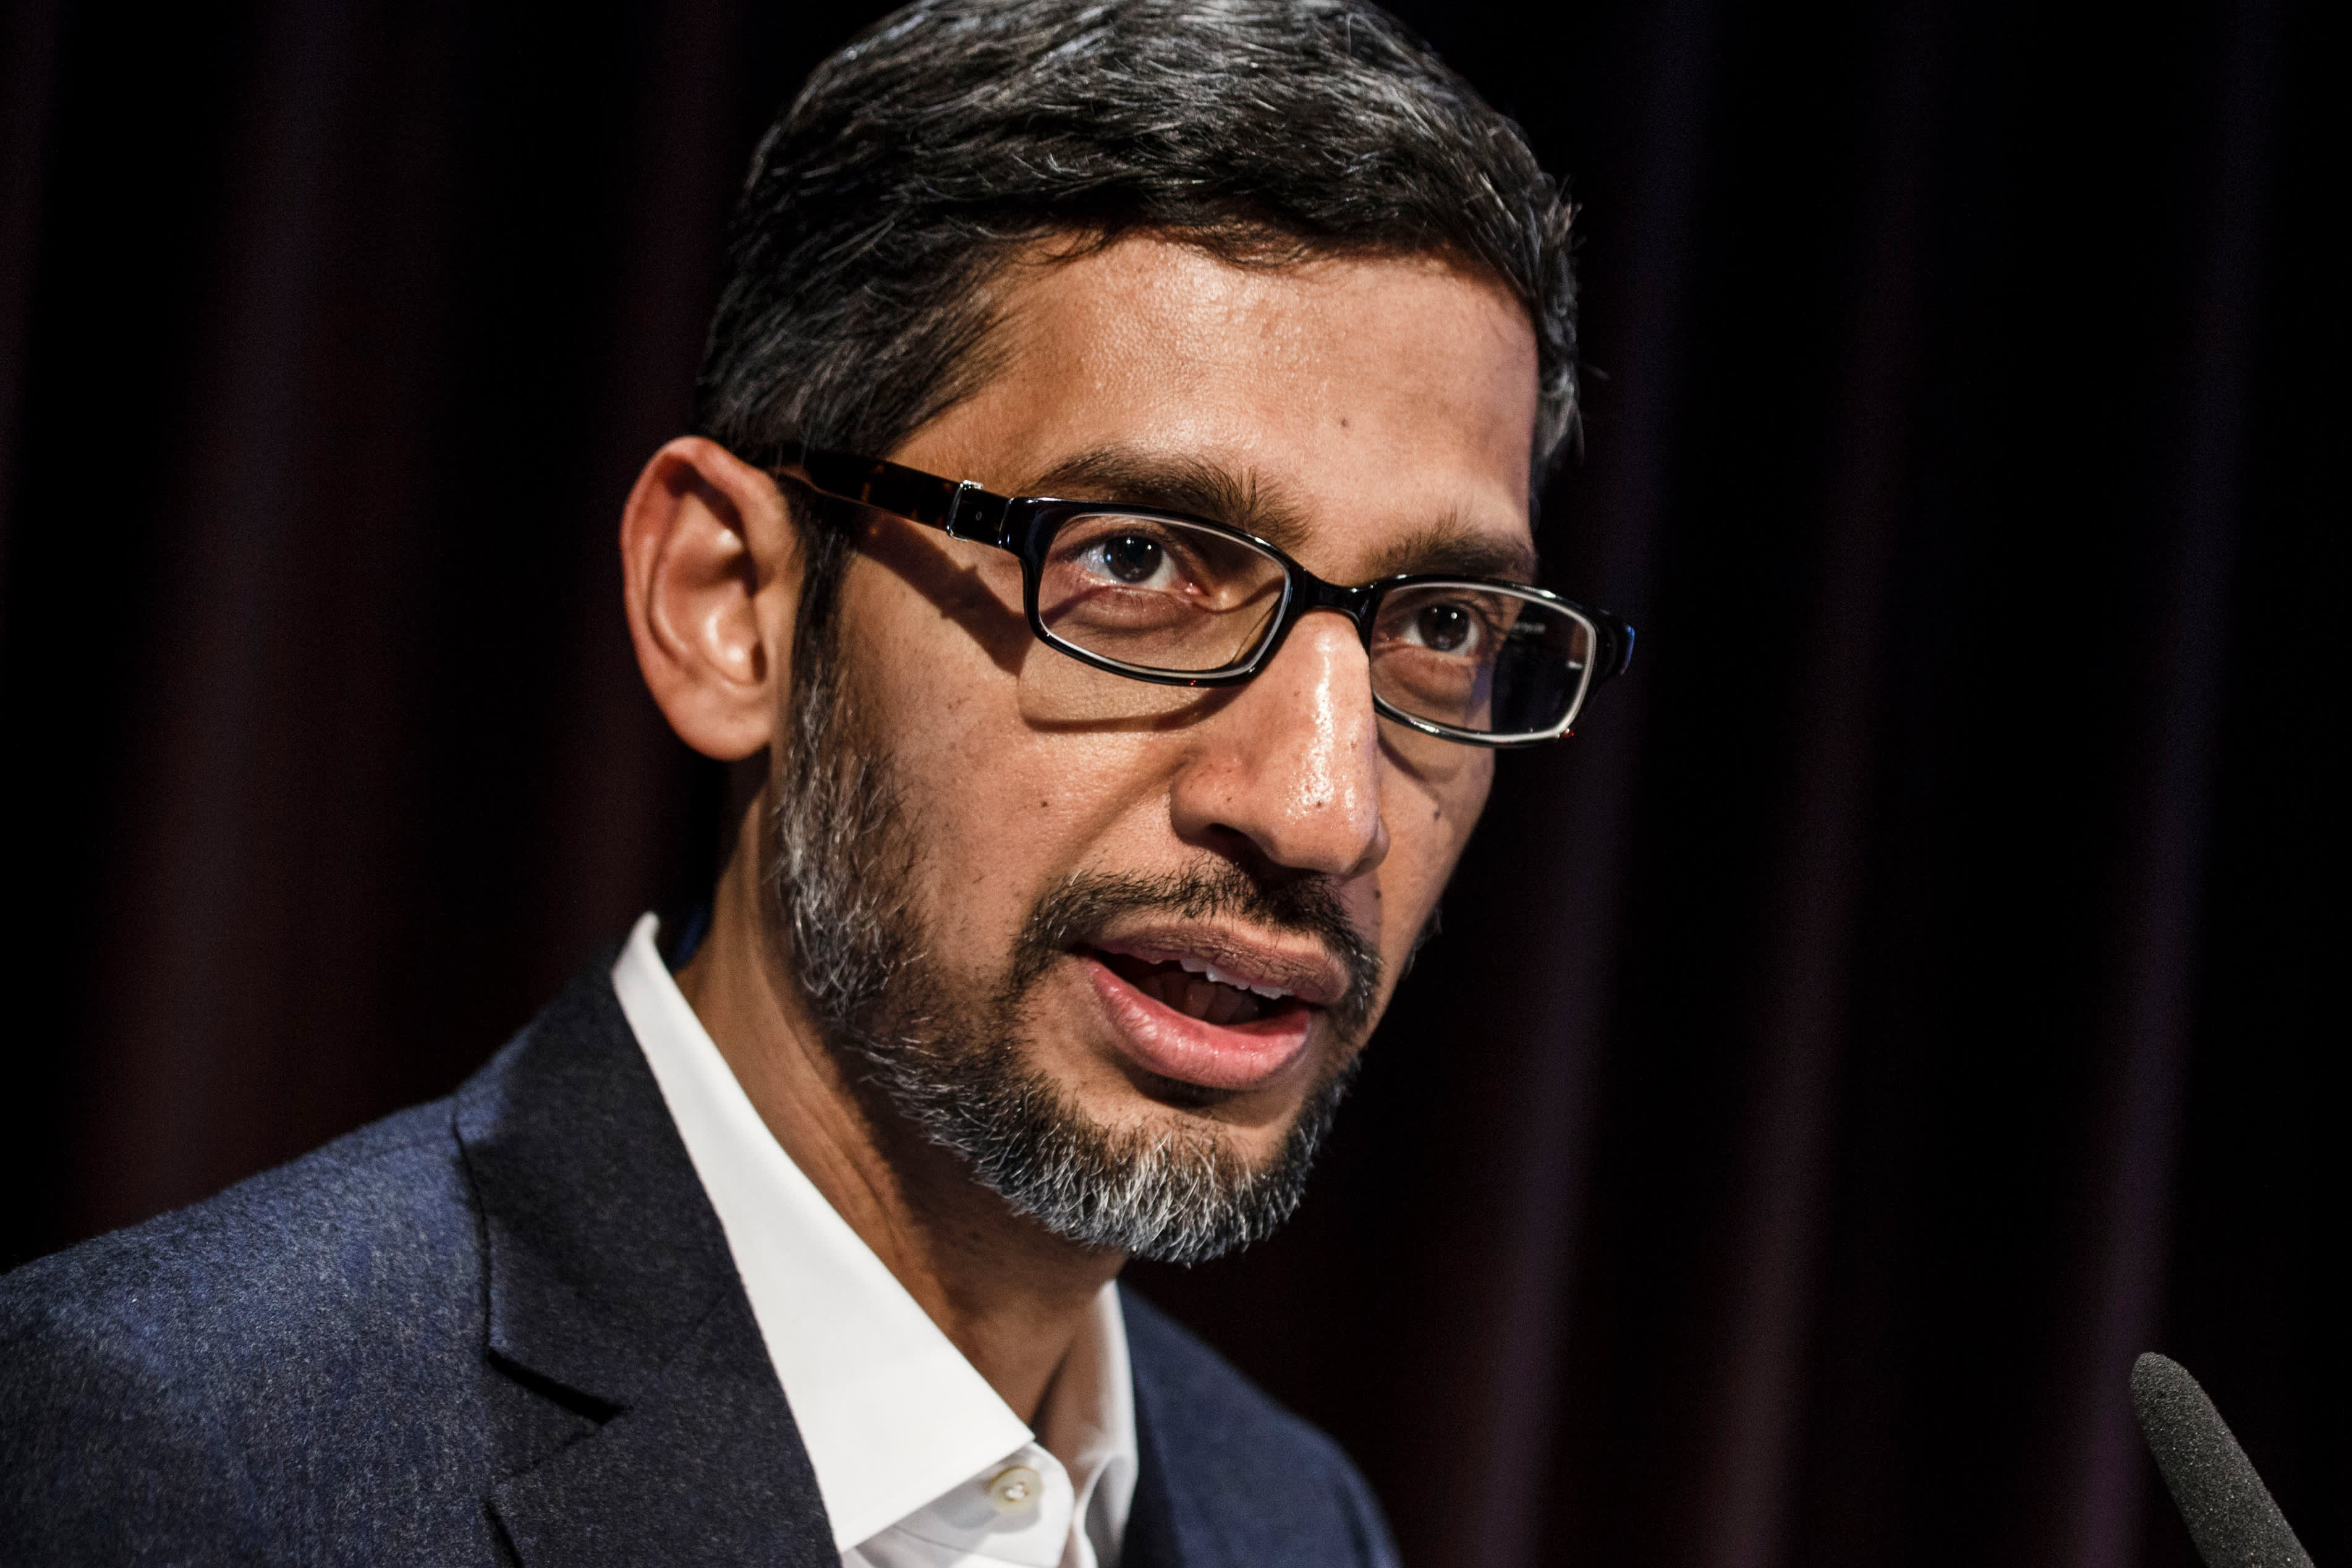 Google will no longer hold weekly all-hands meetings amid growing workplace tensions